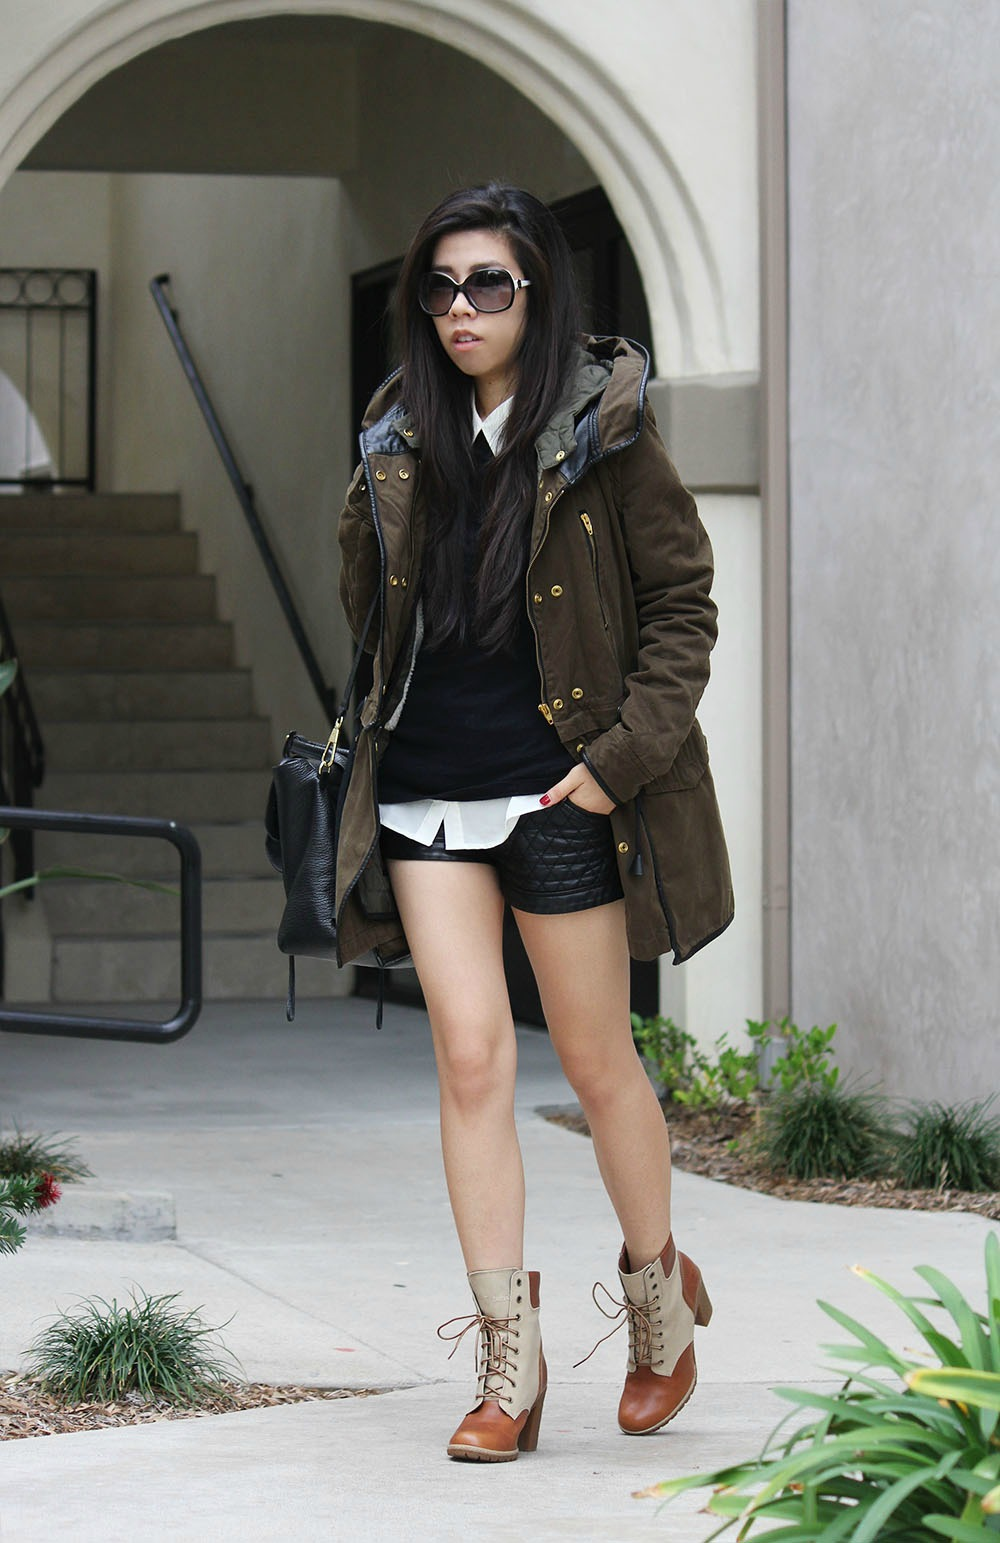 Black Sweater with White Collar Top and Black Leather Shorts_Classic Black and White Outfit